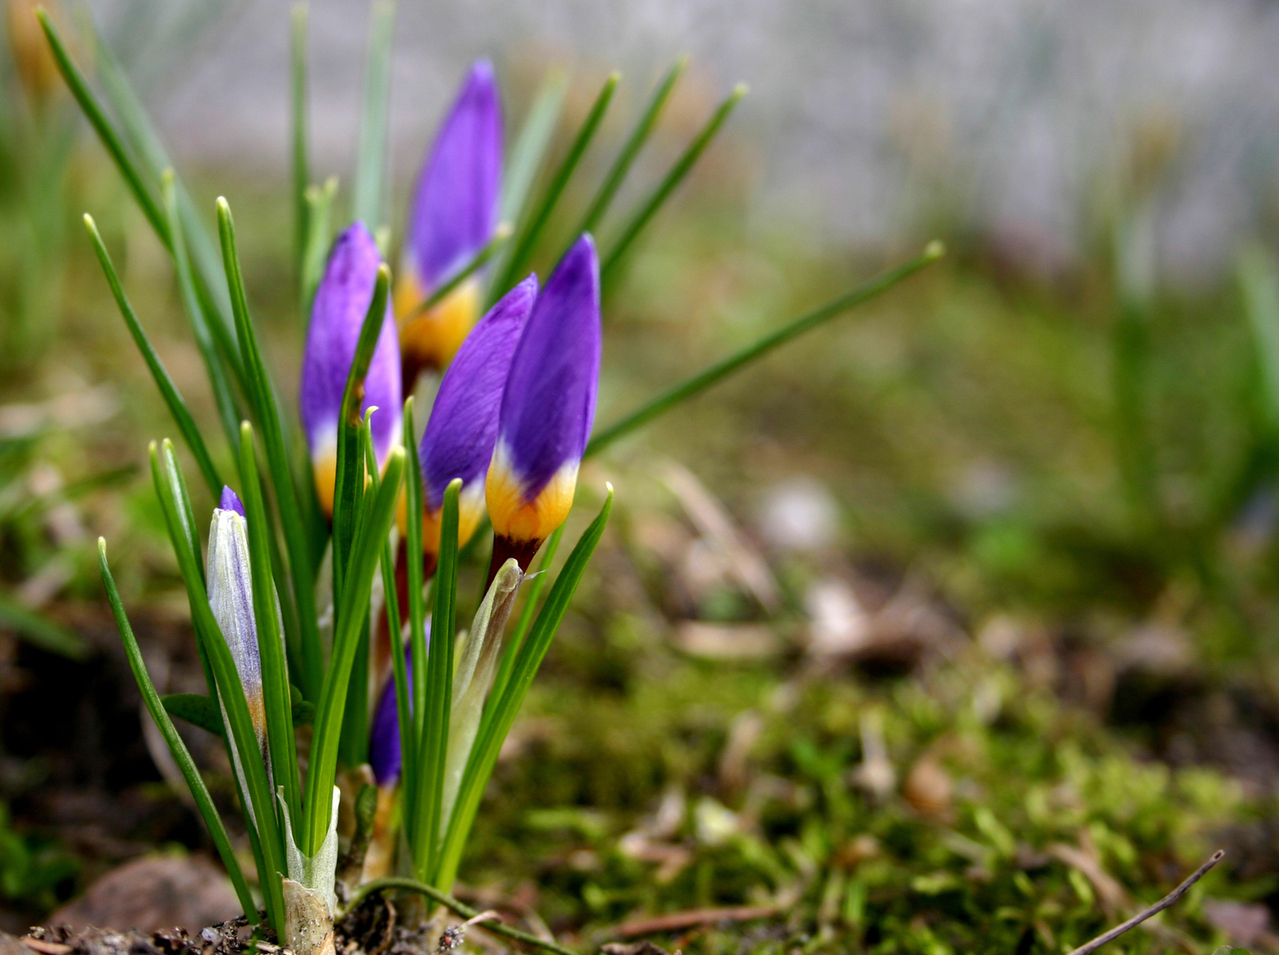 Early crocus are a harbinger of Springtime in the Northeast.